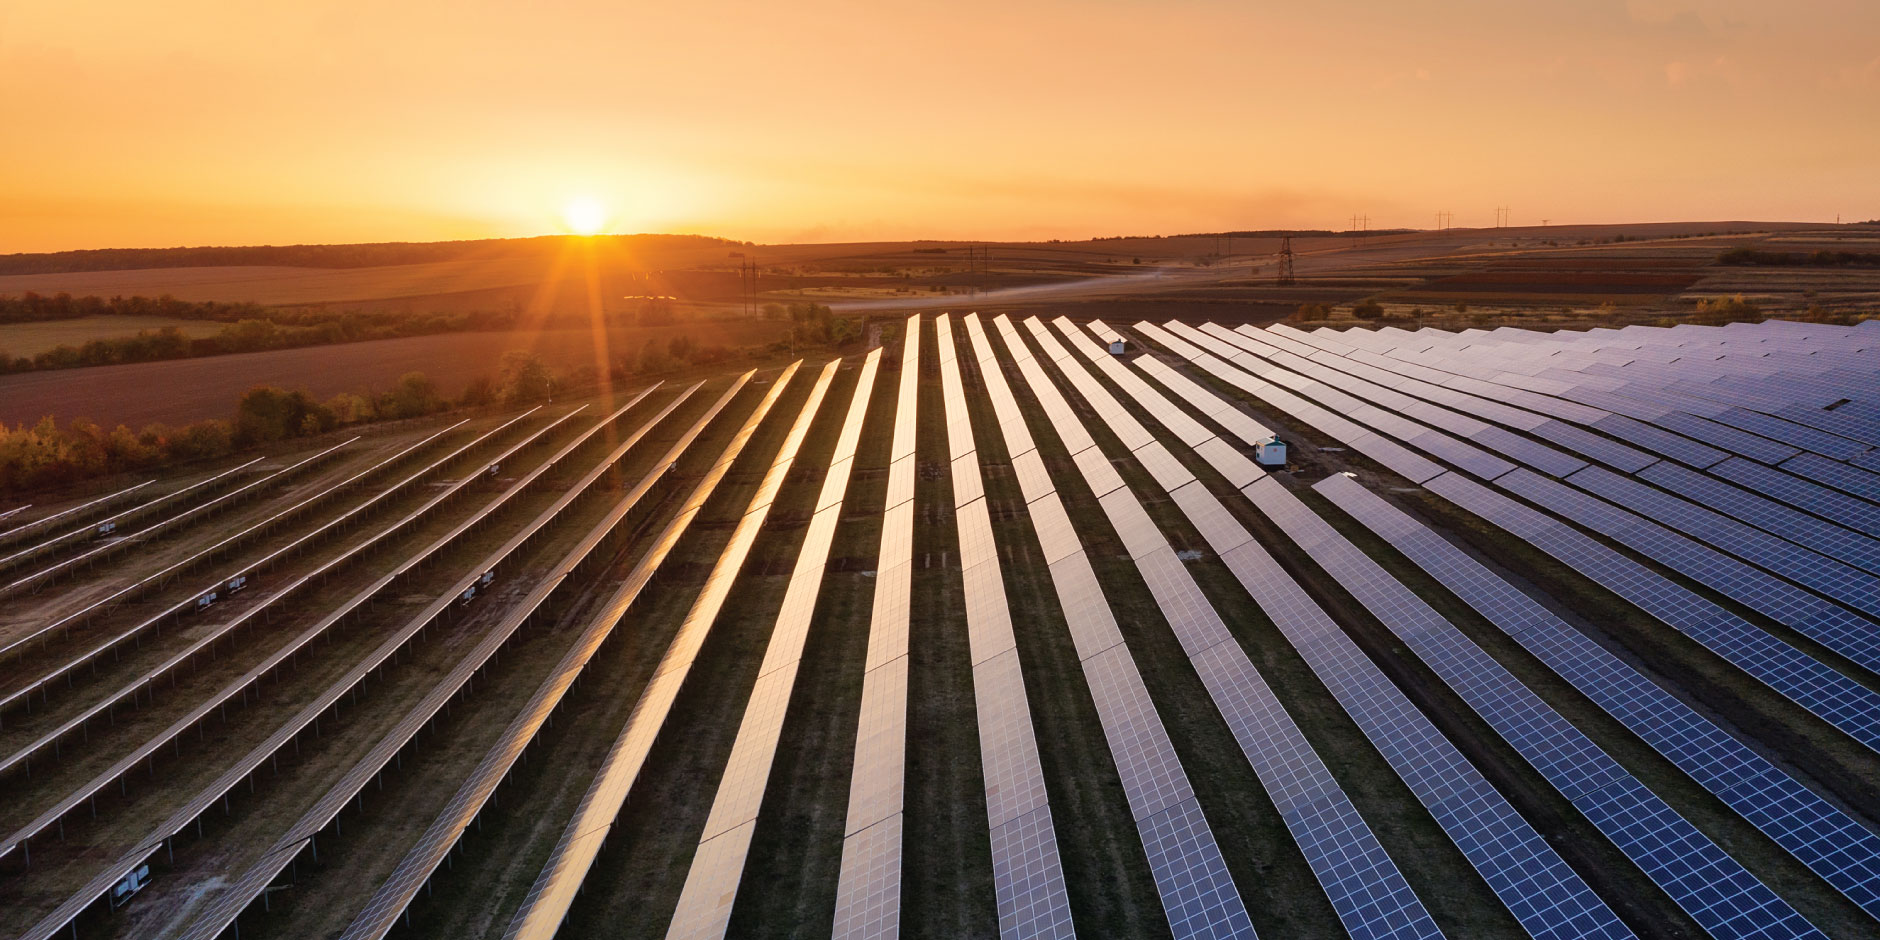 Rows of solar panels in a field with the sunset in the background